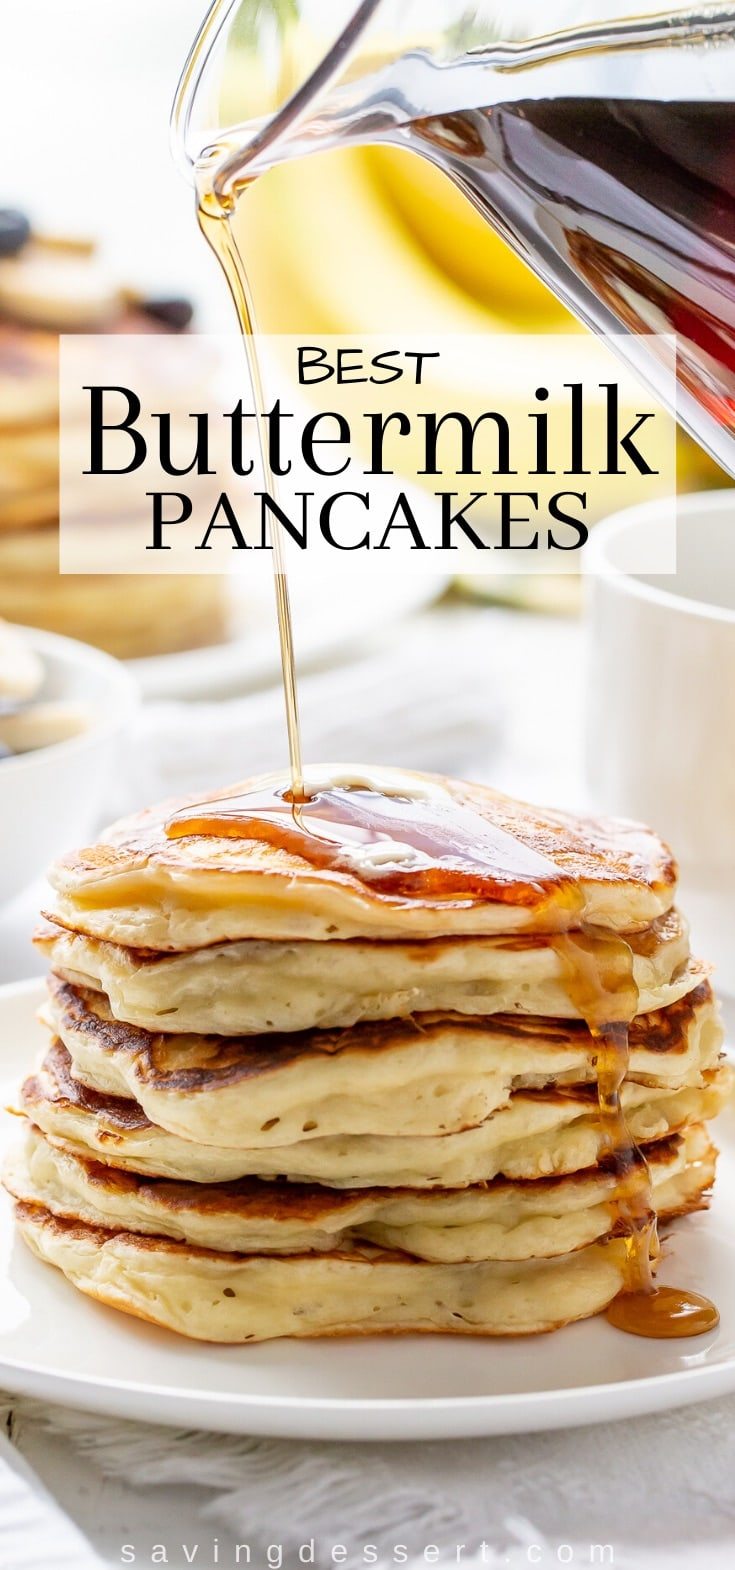 A stack of buttermilk pancakes with maple syrup poured over the top